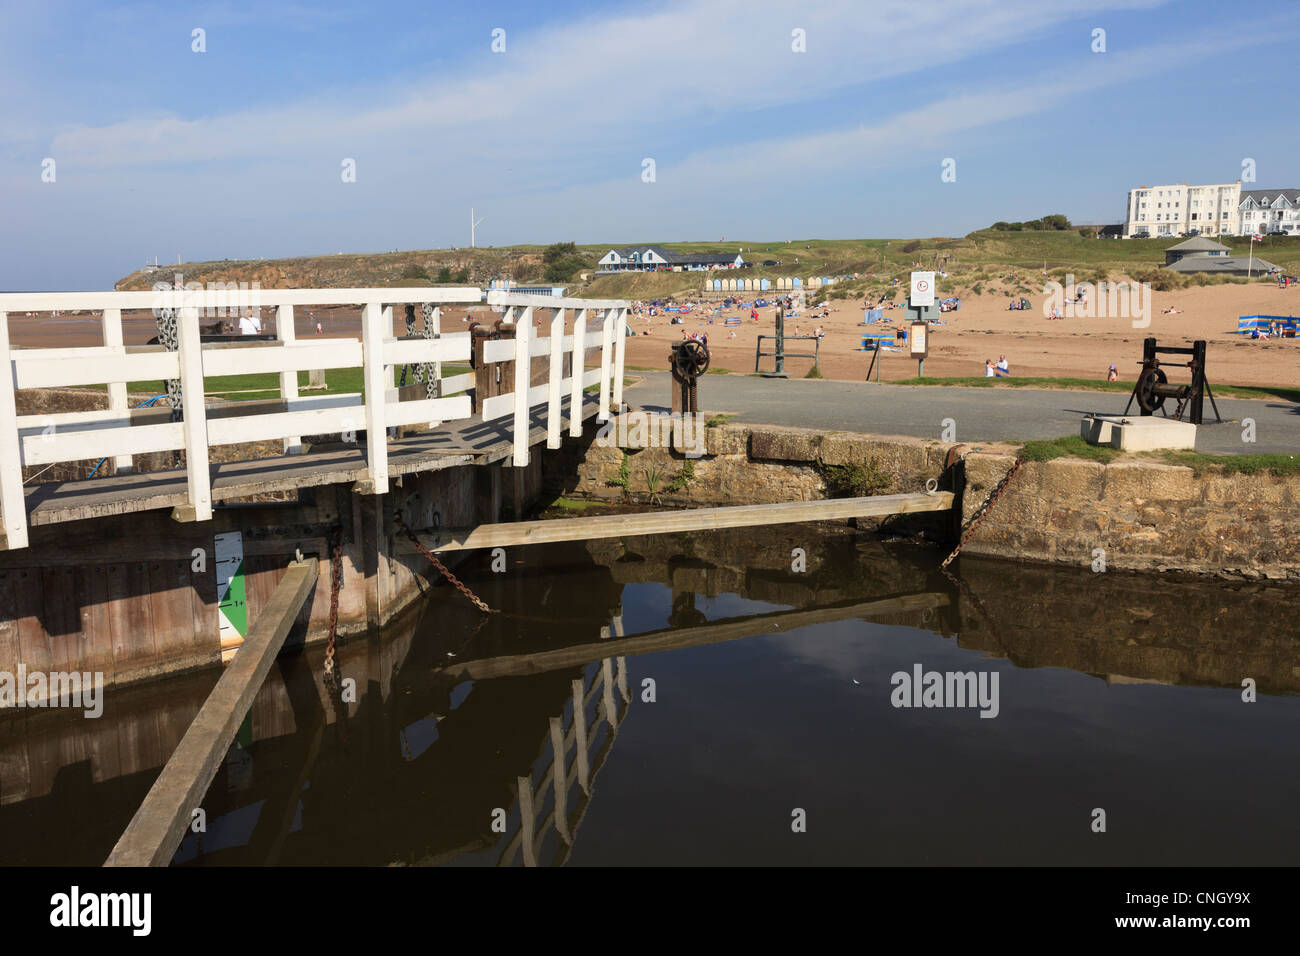 End of Bude canal by only hand operated sea lock gates in England with Summerleaze beach beyond in Bude, Cornwall, - Stock Image